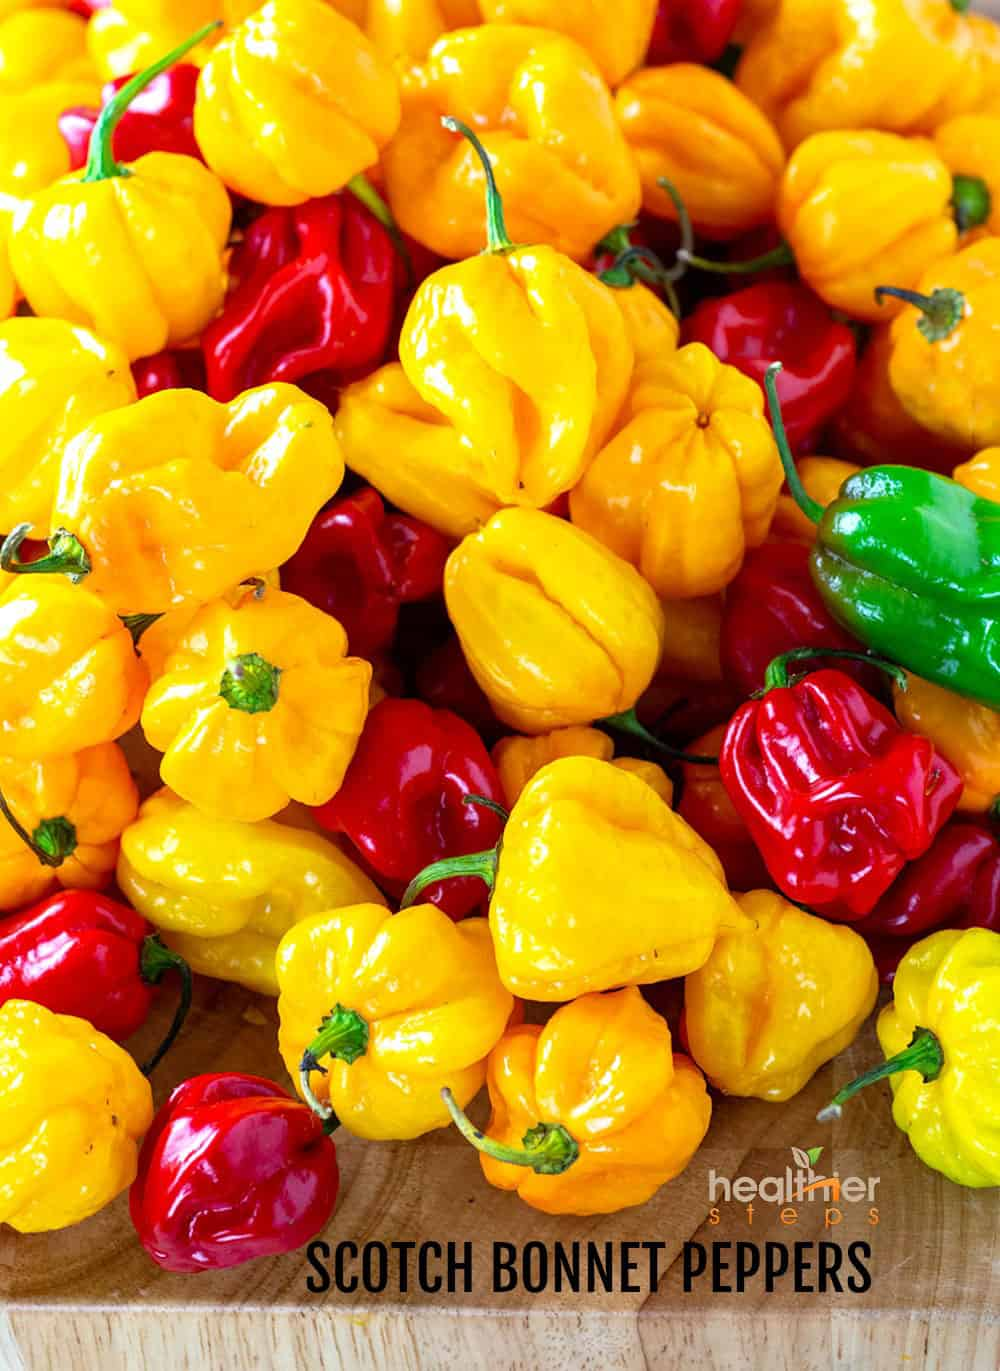 Jerk Sauce Scotch Bonnet Peppers